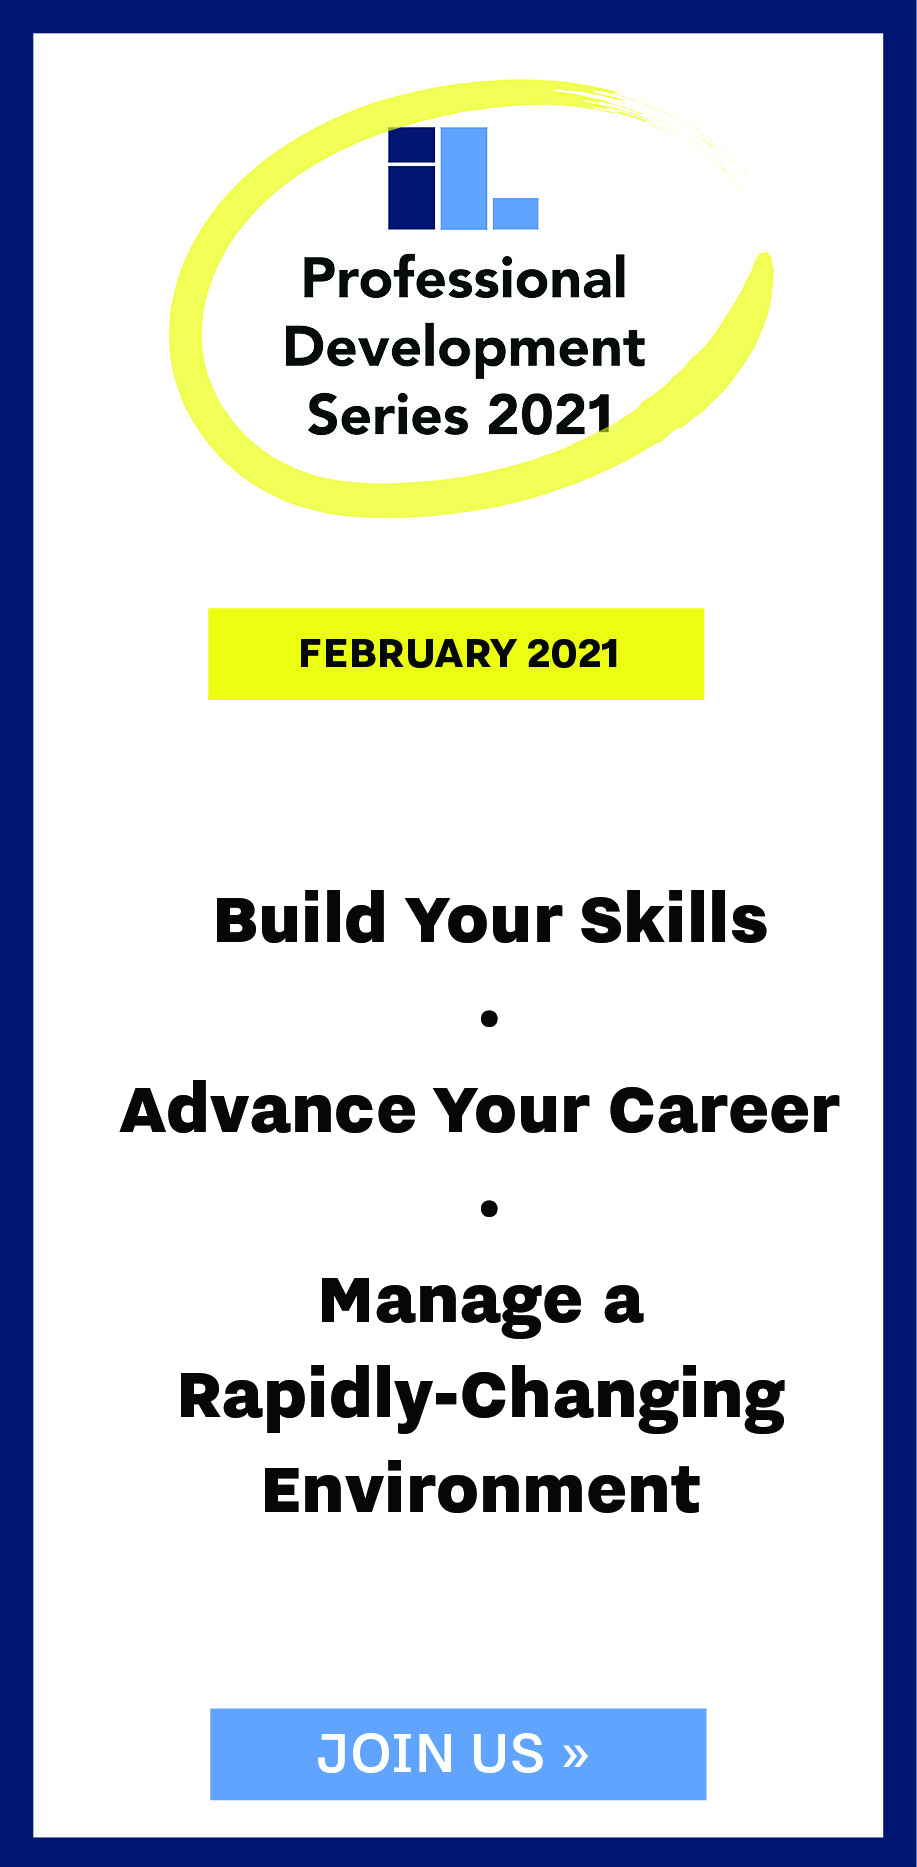 Professional Development Series, Feburary 2021